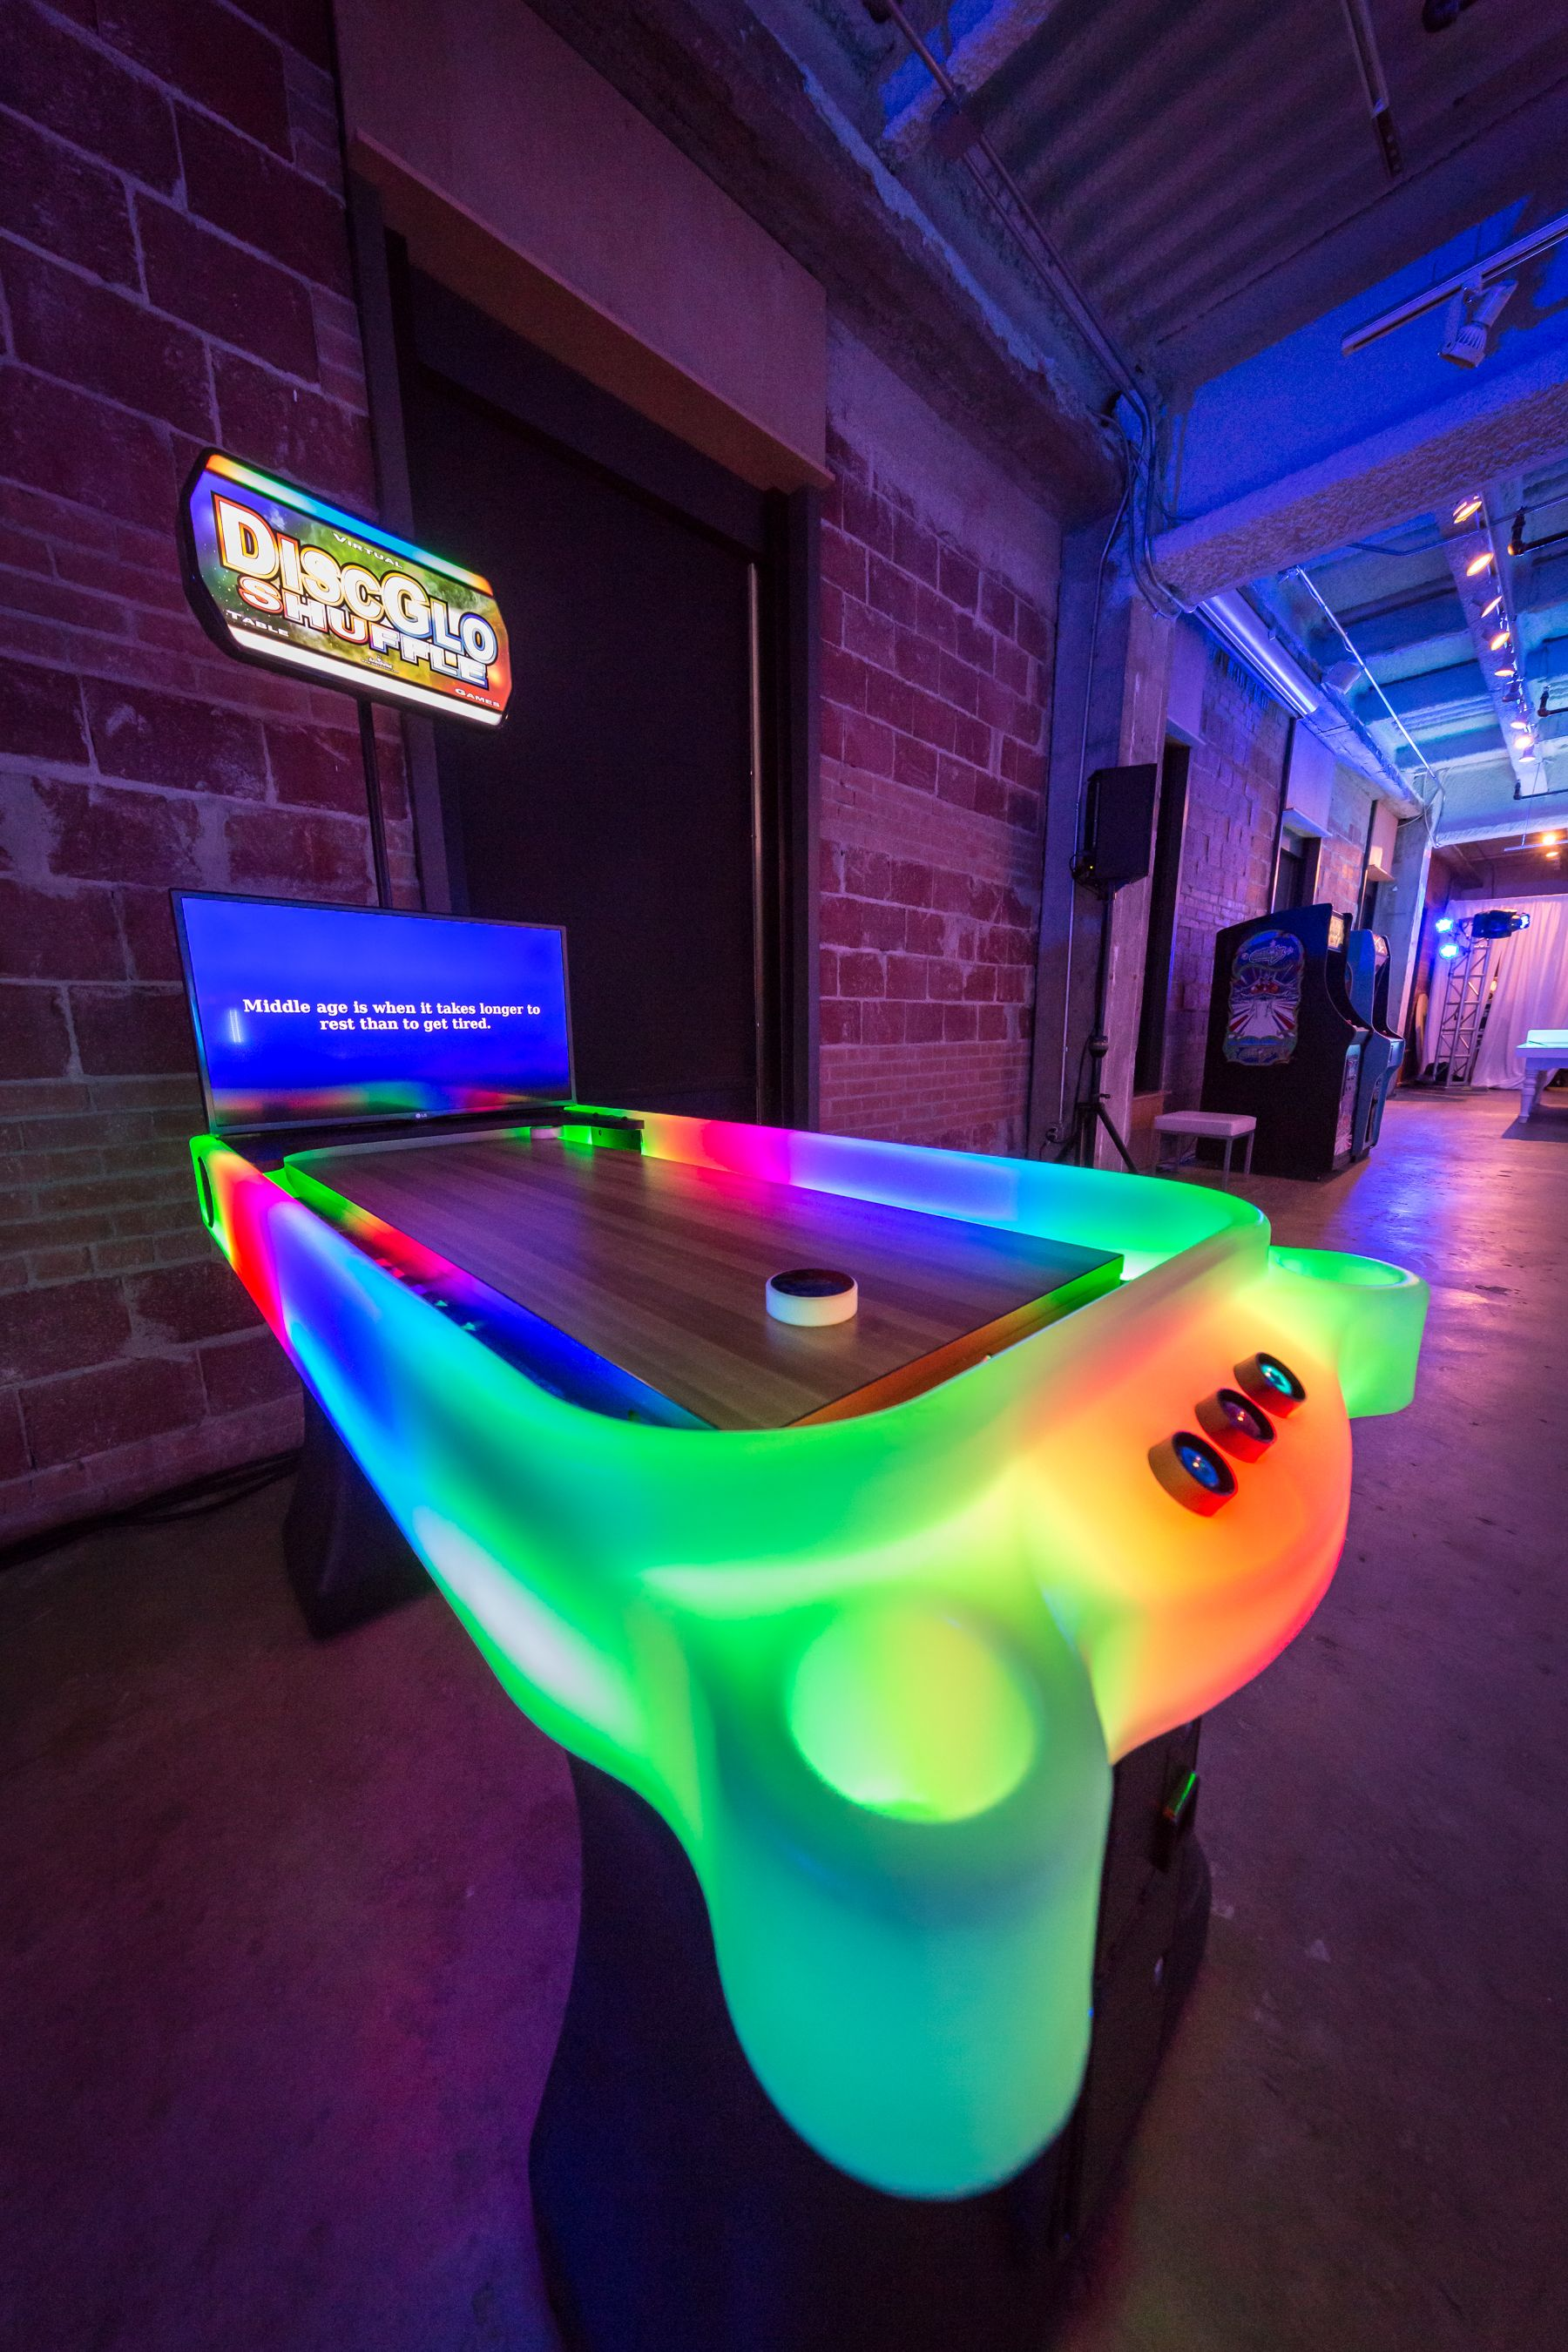 Gentil Pool Tables · Disc Glow Shuffleboard Is A Super Popular And Fun Game For  Your Event. Check Out